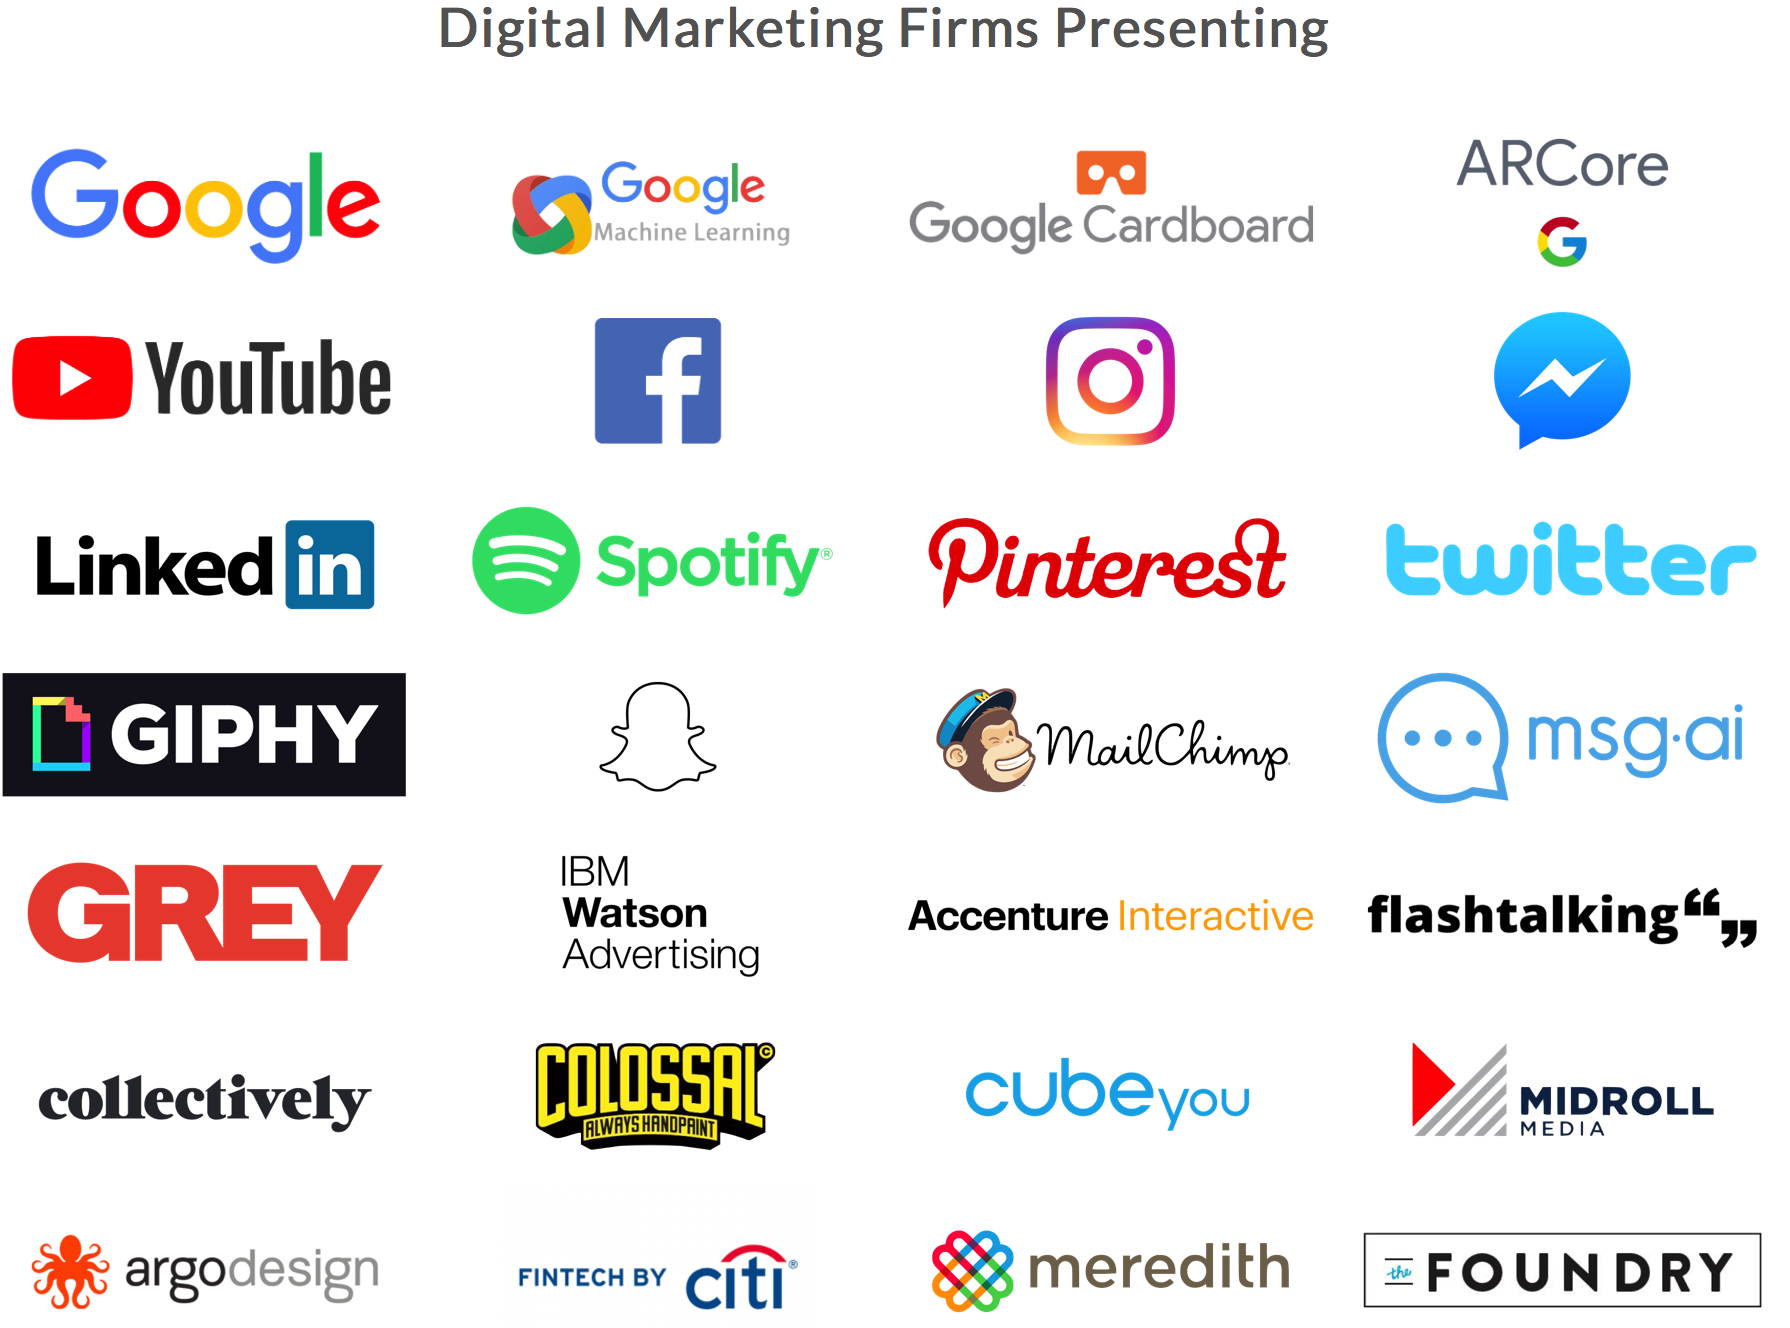 DIGITAL MARKETING LEADERS TO SHARE LATEST DEVELOPMENTS, BEST PRACTICES AT FIRST-OF-ITS KIND LEARNING CONFERENCE FOR BUSINESS EXECS